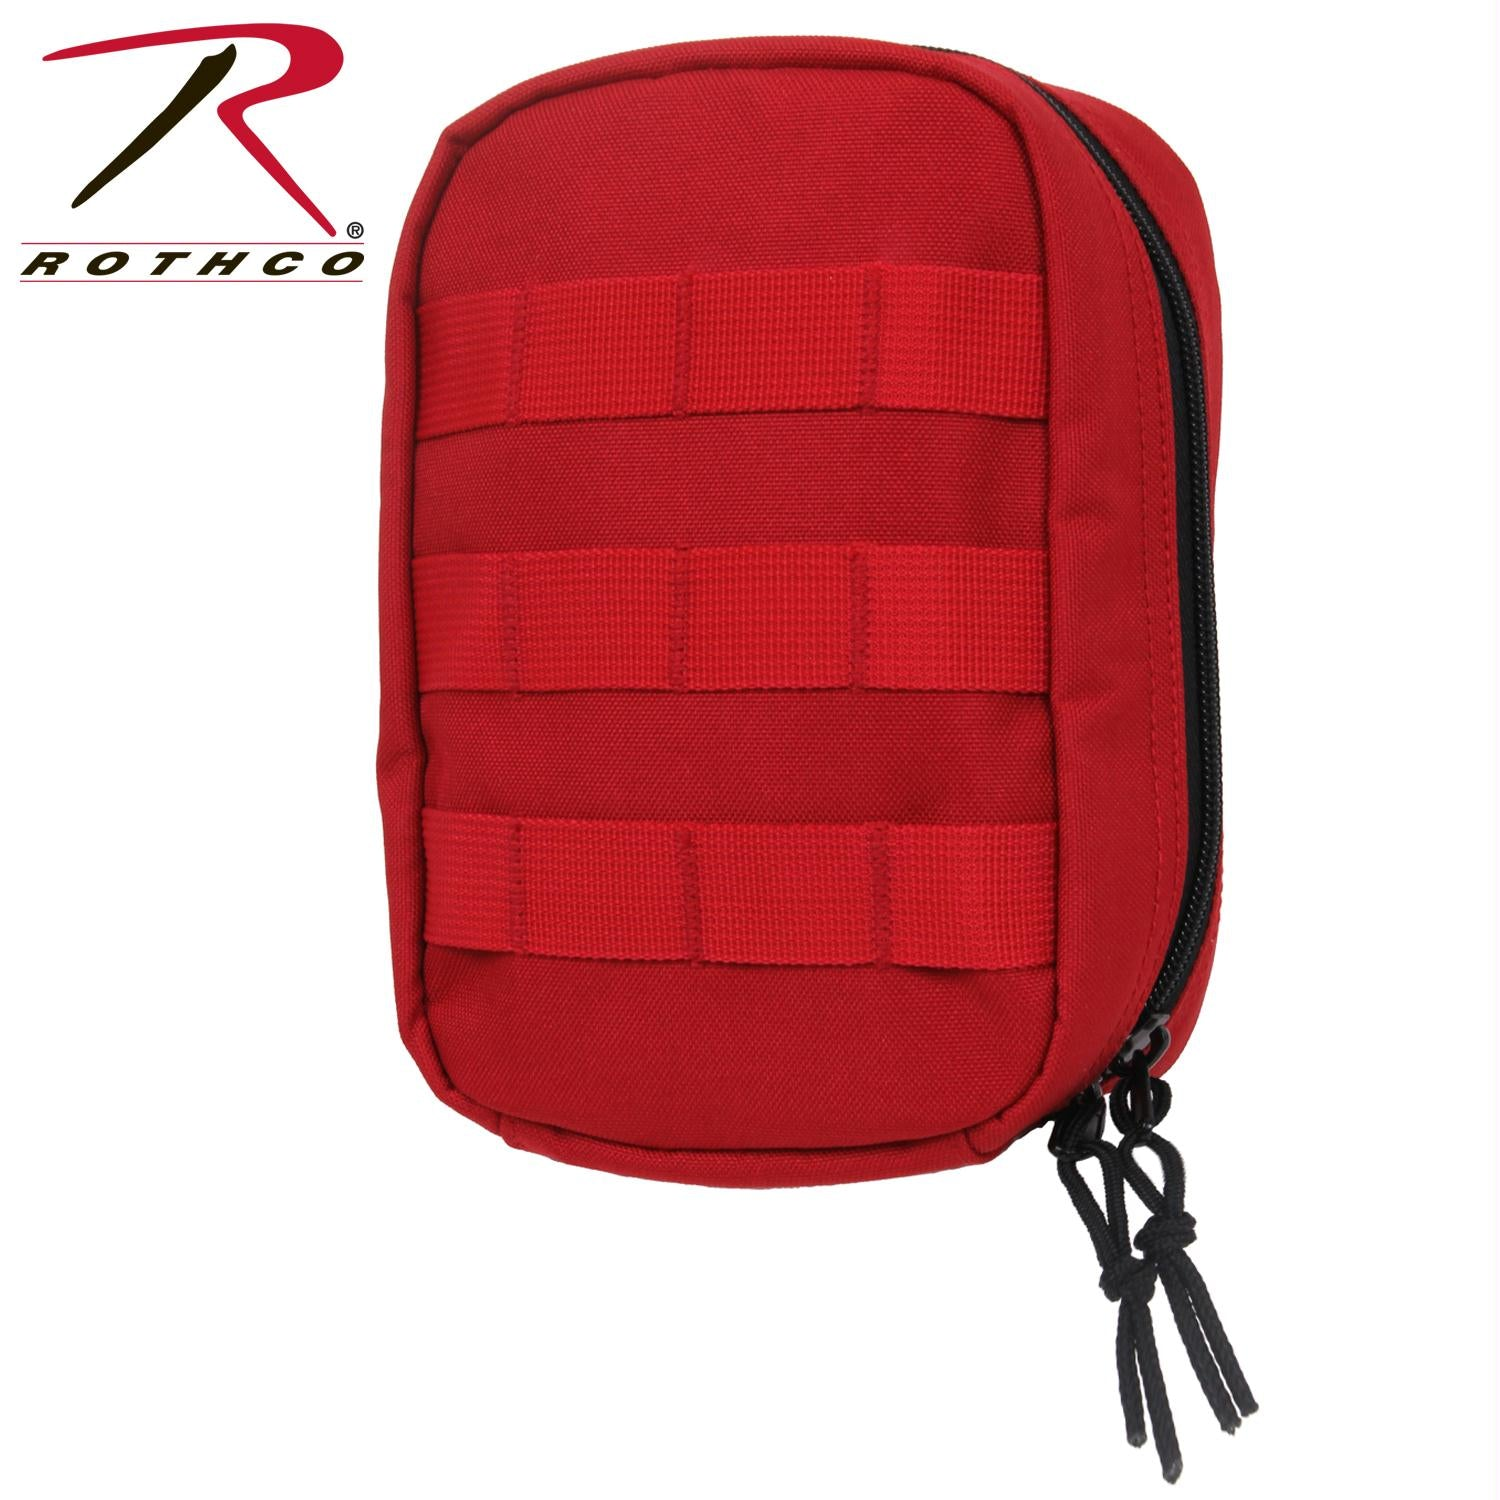 Rothco MOLLE Tactical Trauma & First Aid Kit Pouch - Red